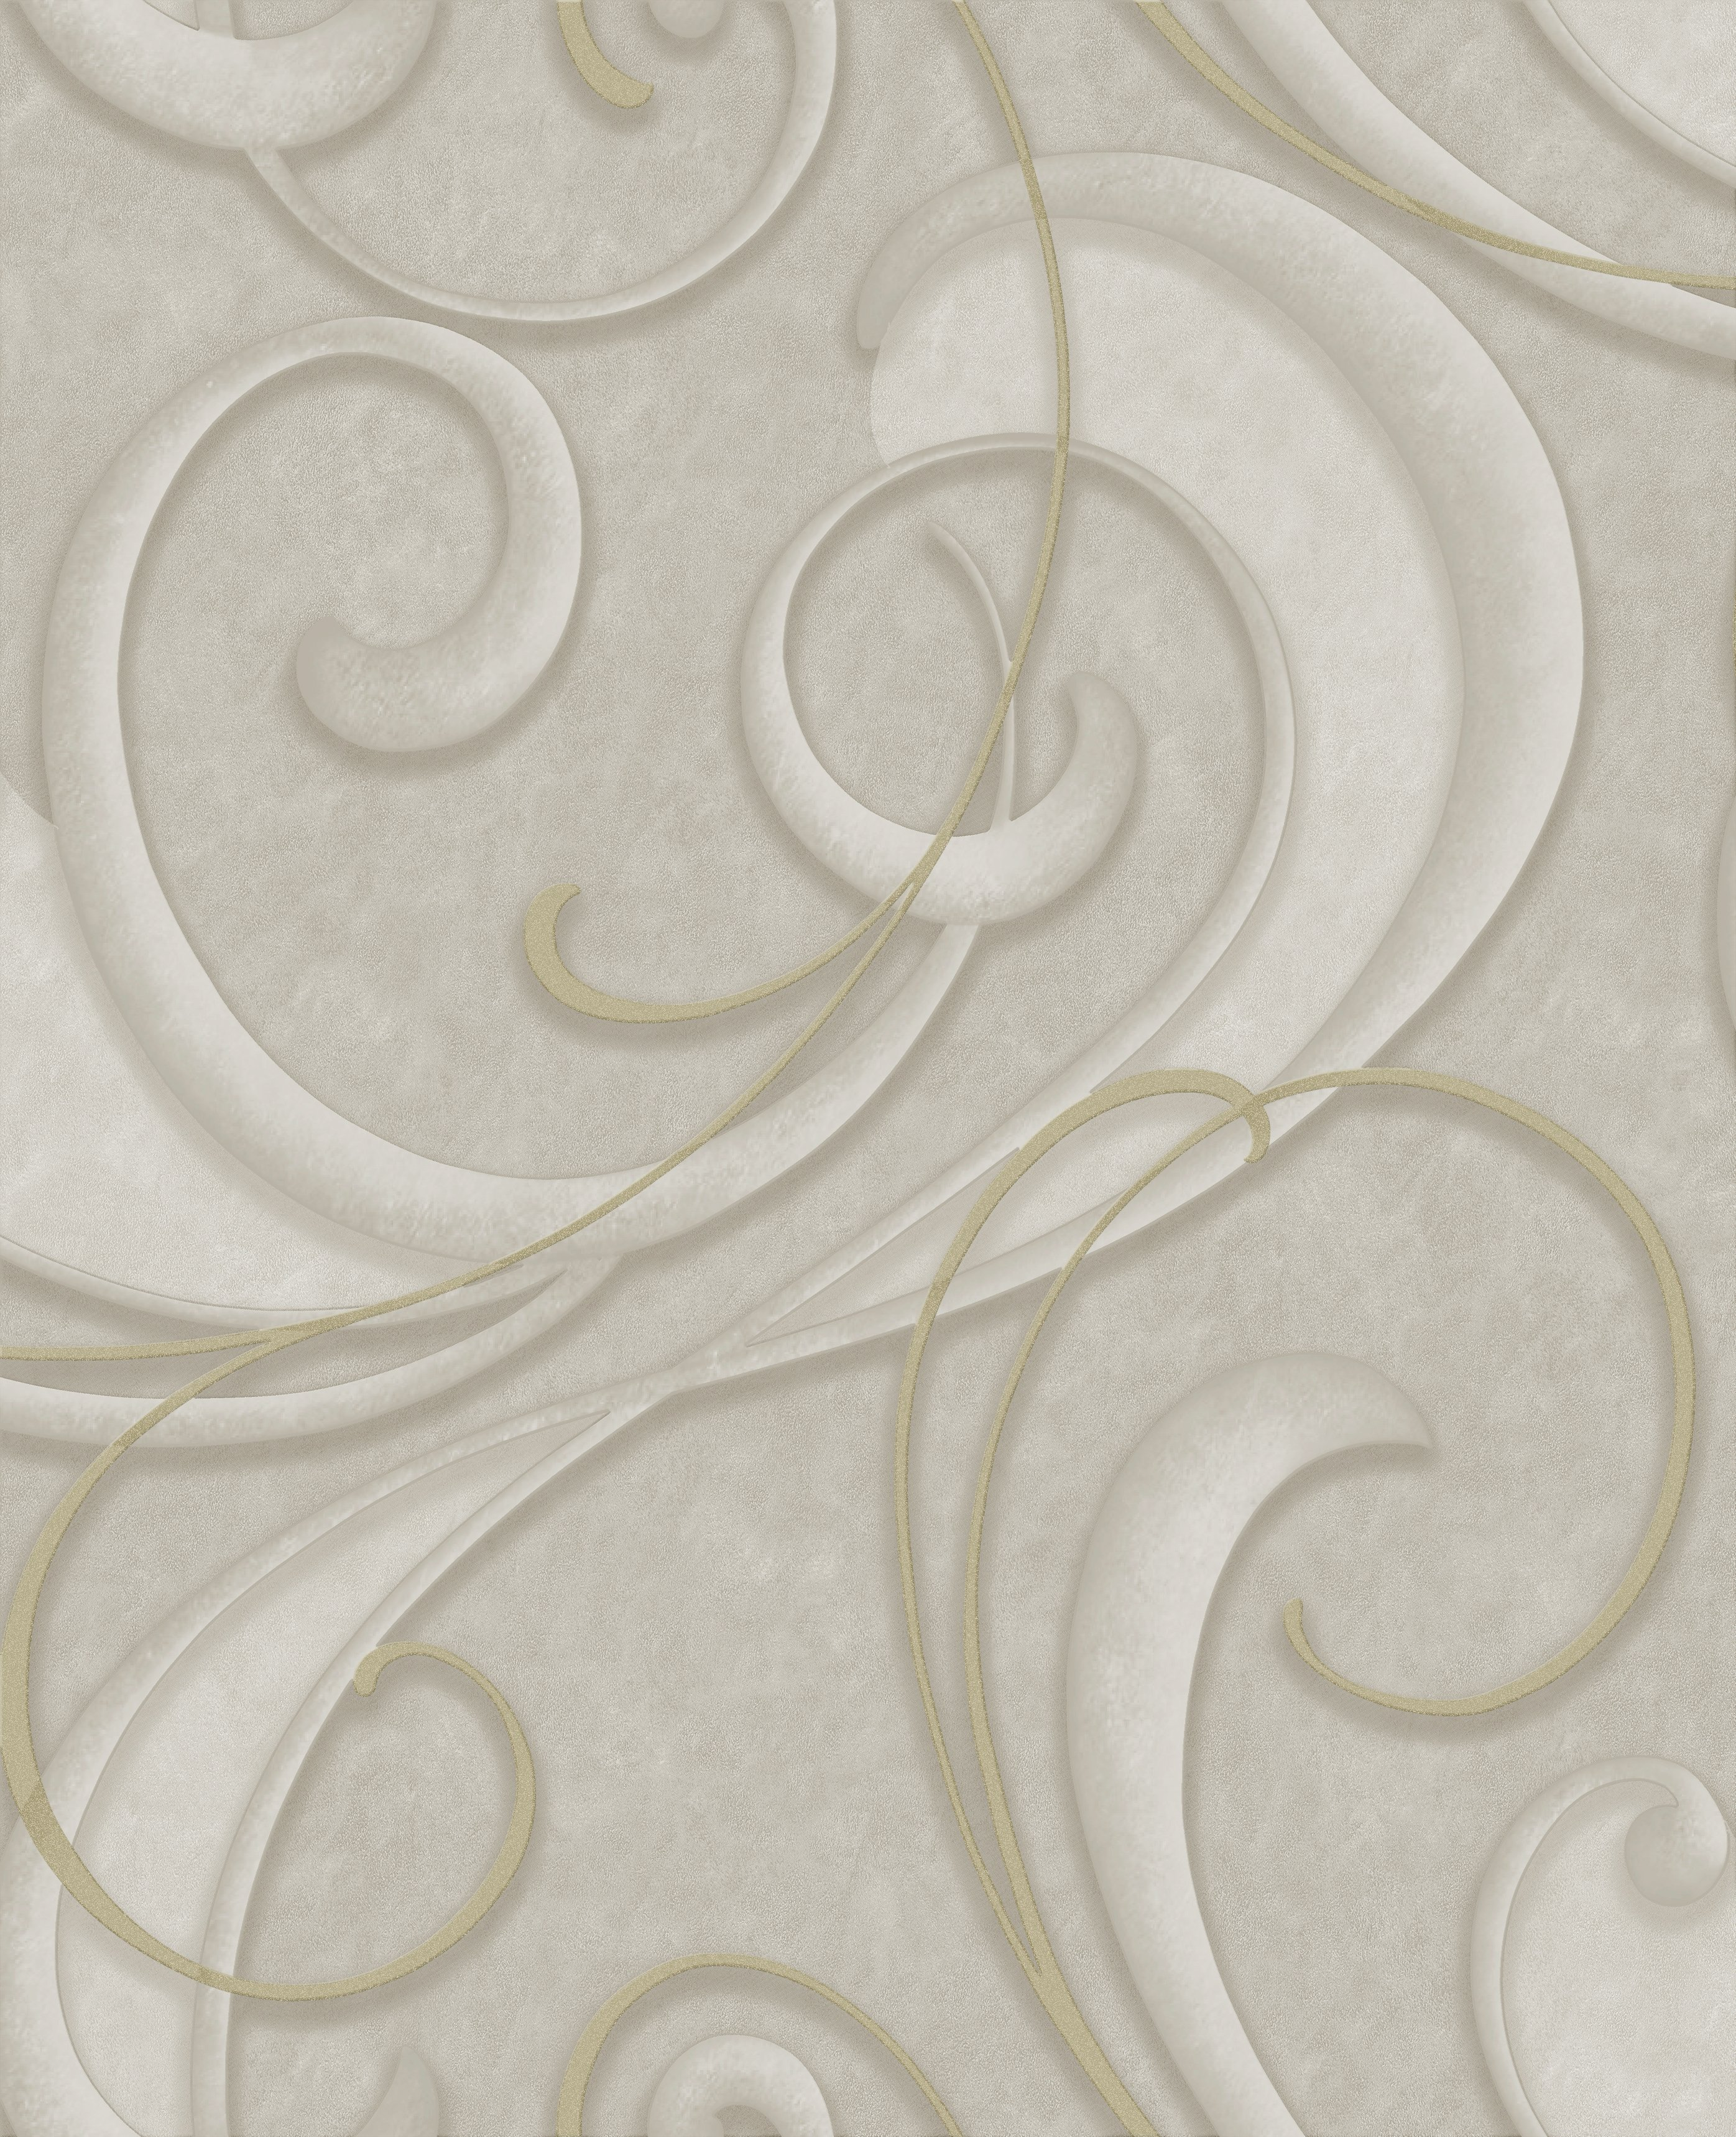 Image of Graham & Brown Flamenco Wallpaper - Taupe & Champagne.